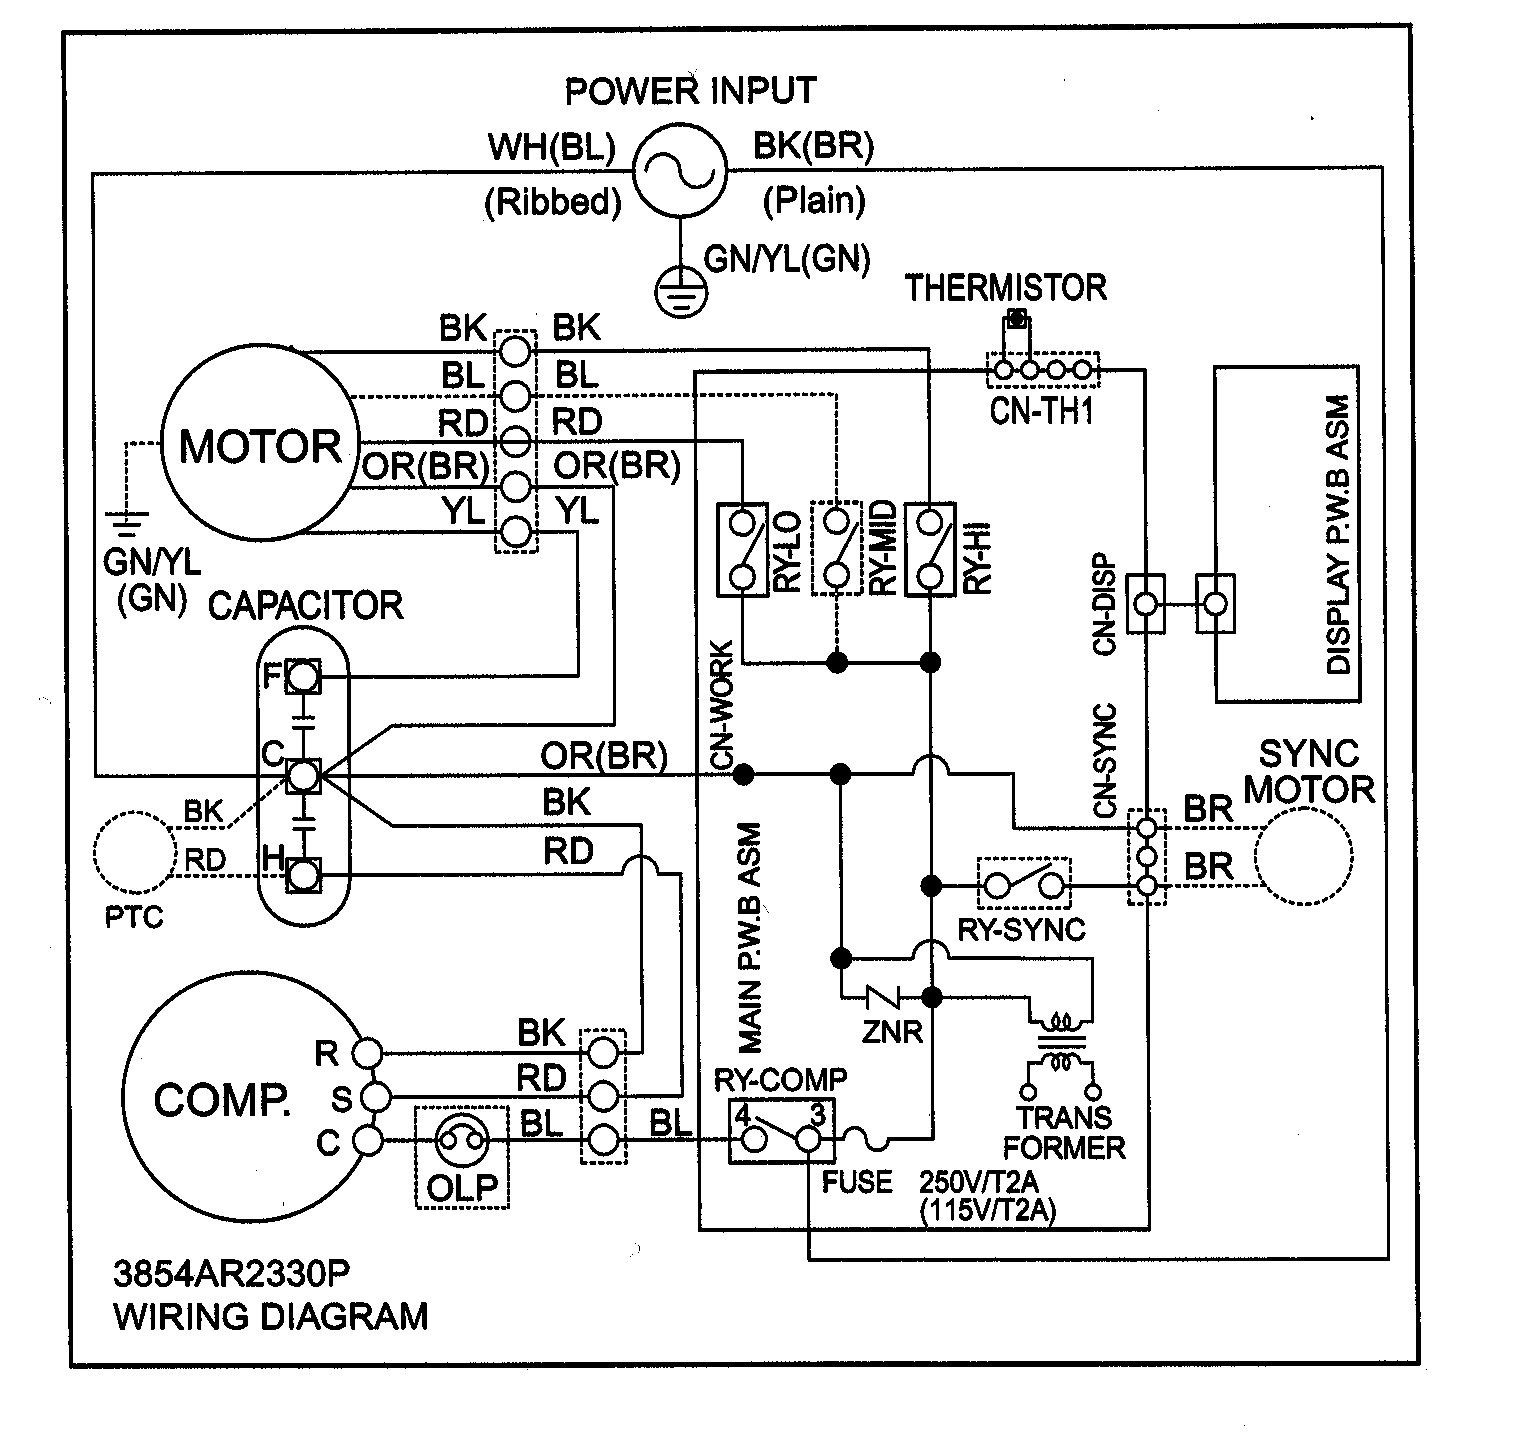 Unique Wiring Diagram Of Lg Window Ac With Images Diagram